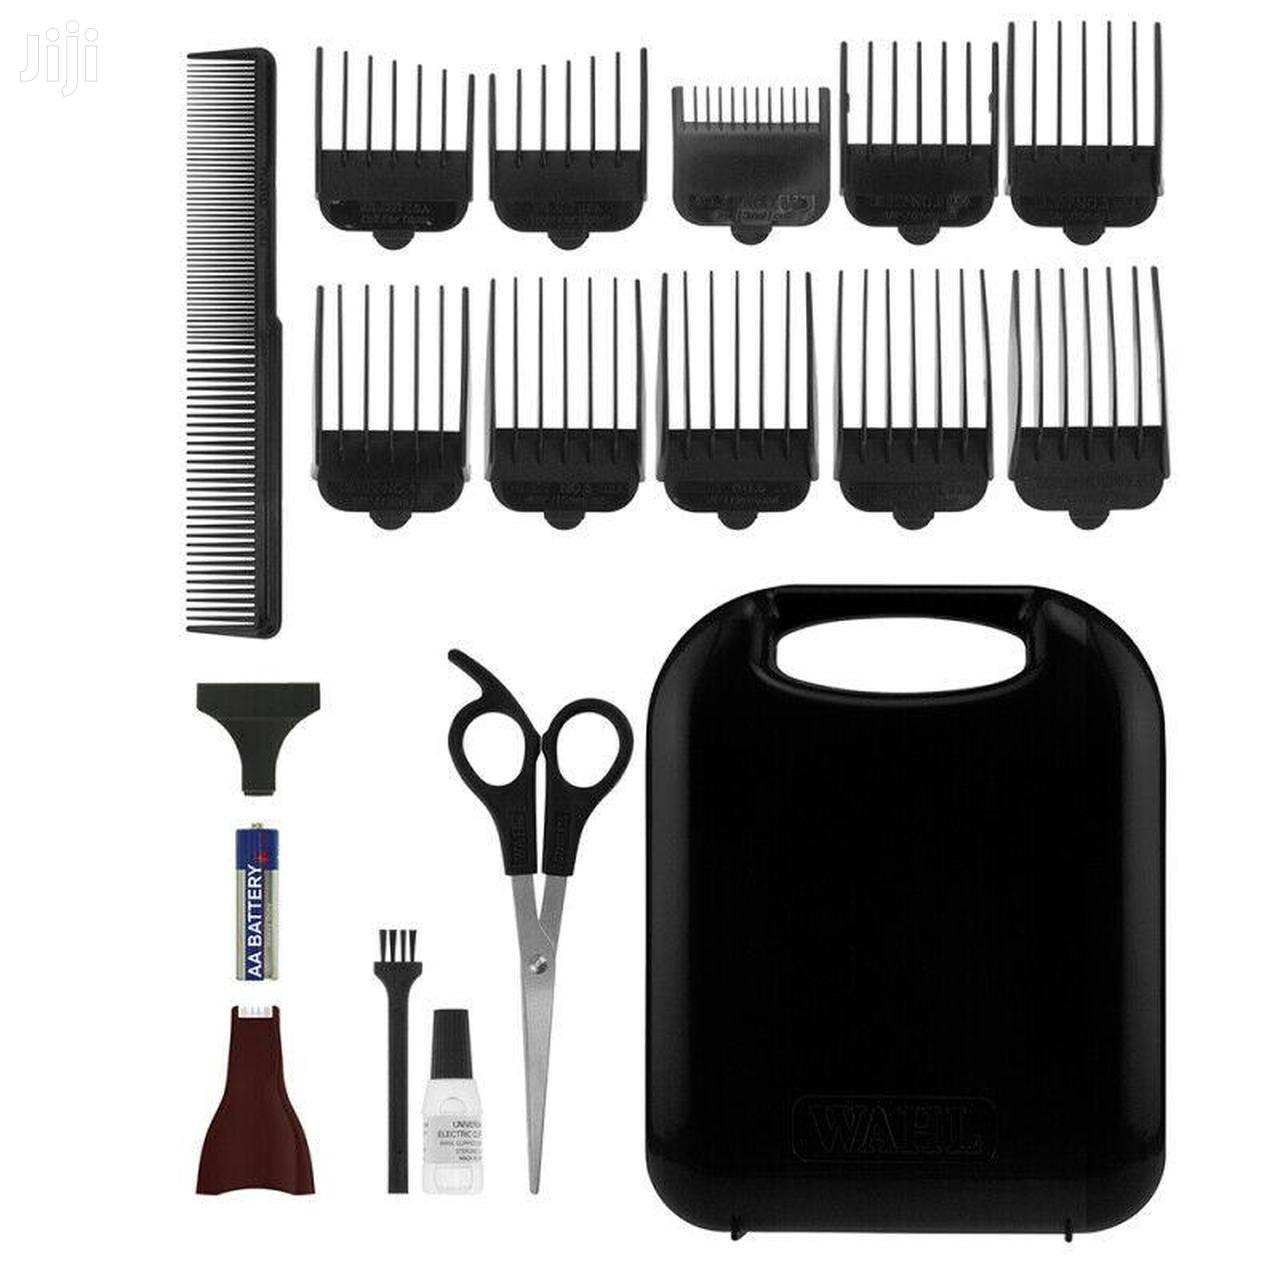 Wahl Hair Clipper & Nose/Ear Trimmer | Tools & Accessories for sale in Accra Metropolitan, Greater Accra, Ghana